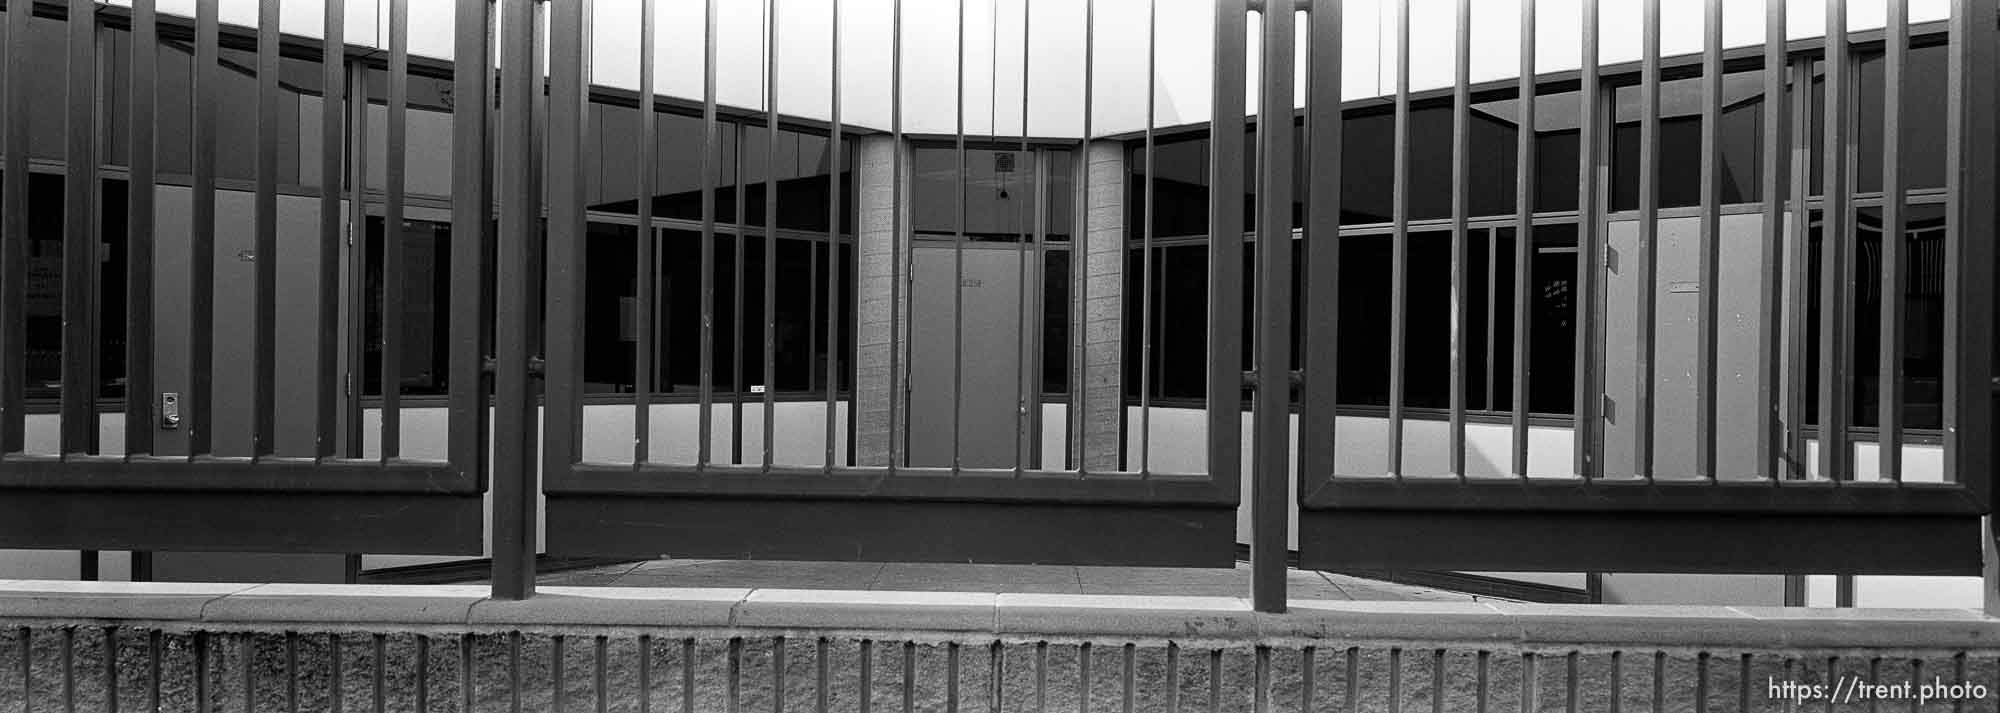 classrooms behind bars at Pine Valley Intermediate